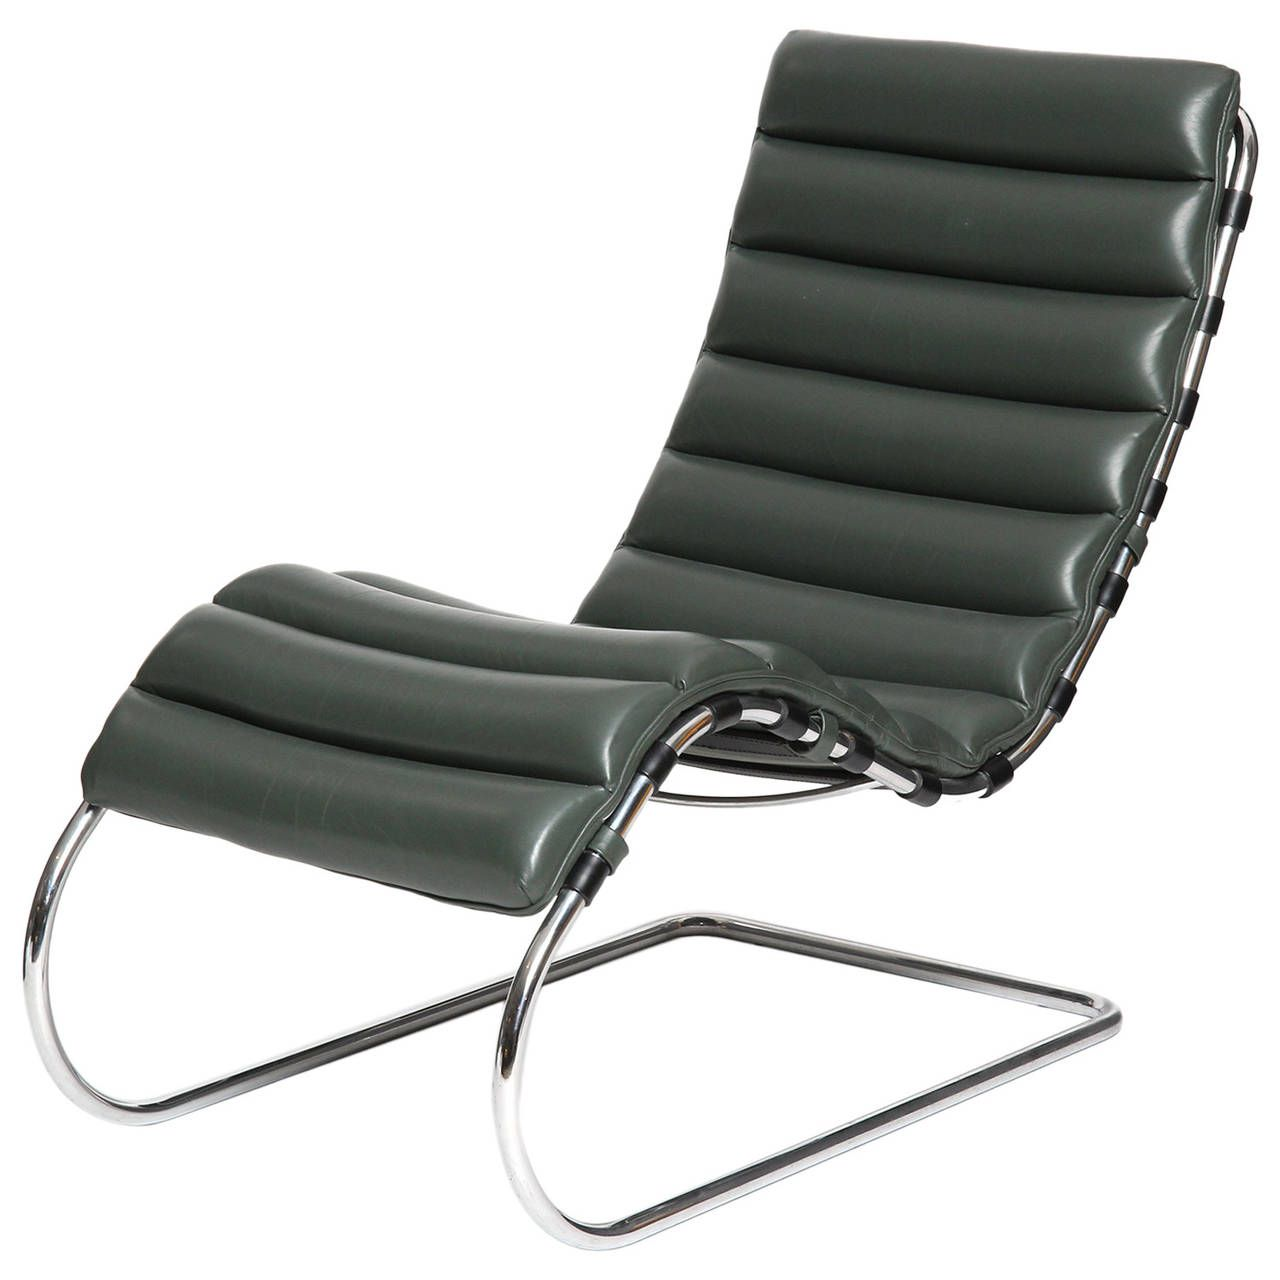 Lounge Chair by Ludwig Mies van der Rohe From a unique